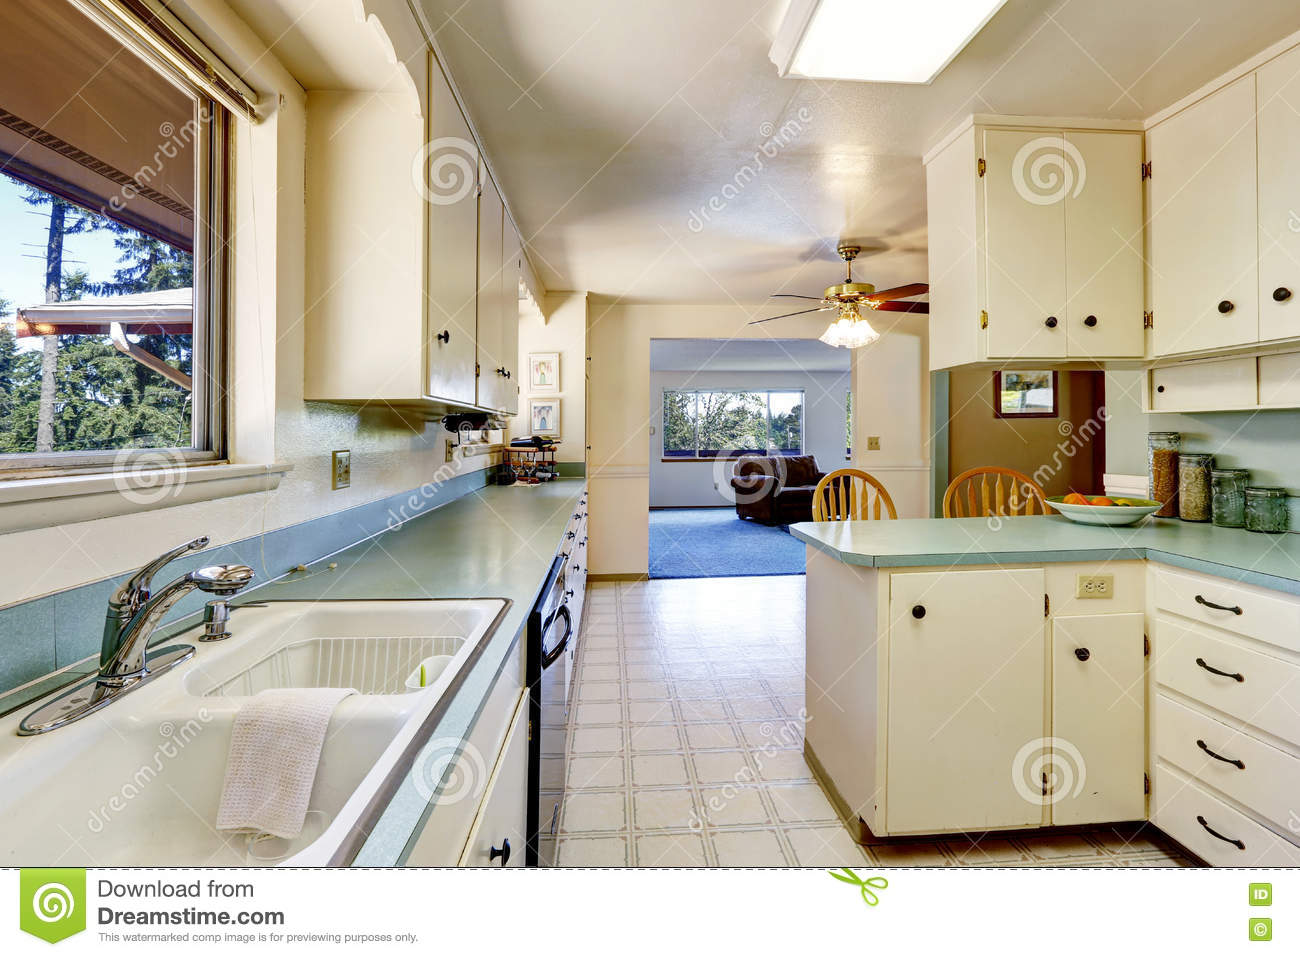 American kitchen and living room - Royalty Free Stock Photo